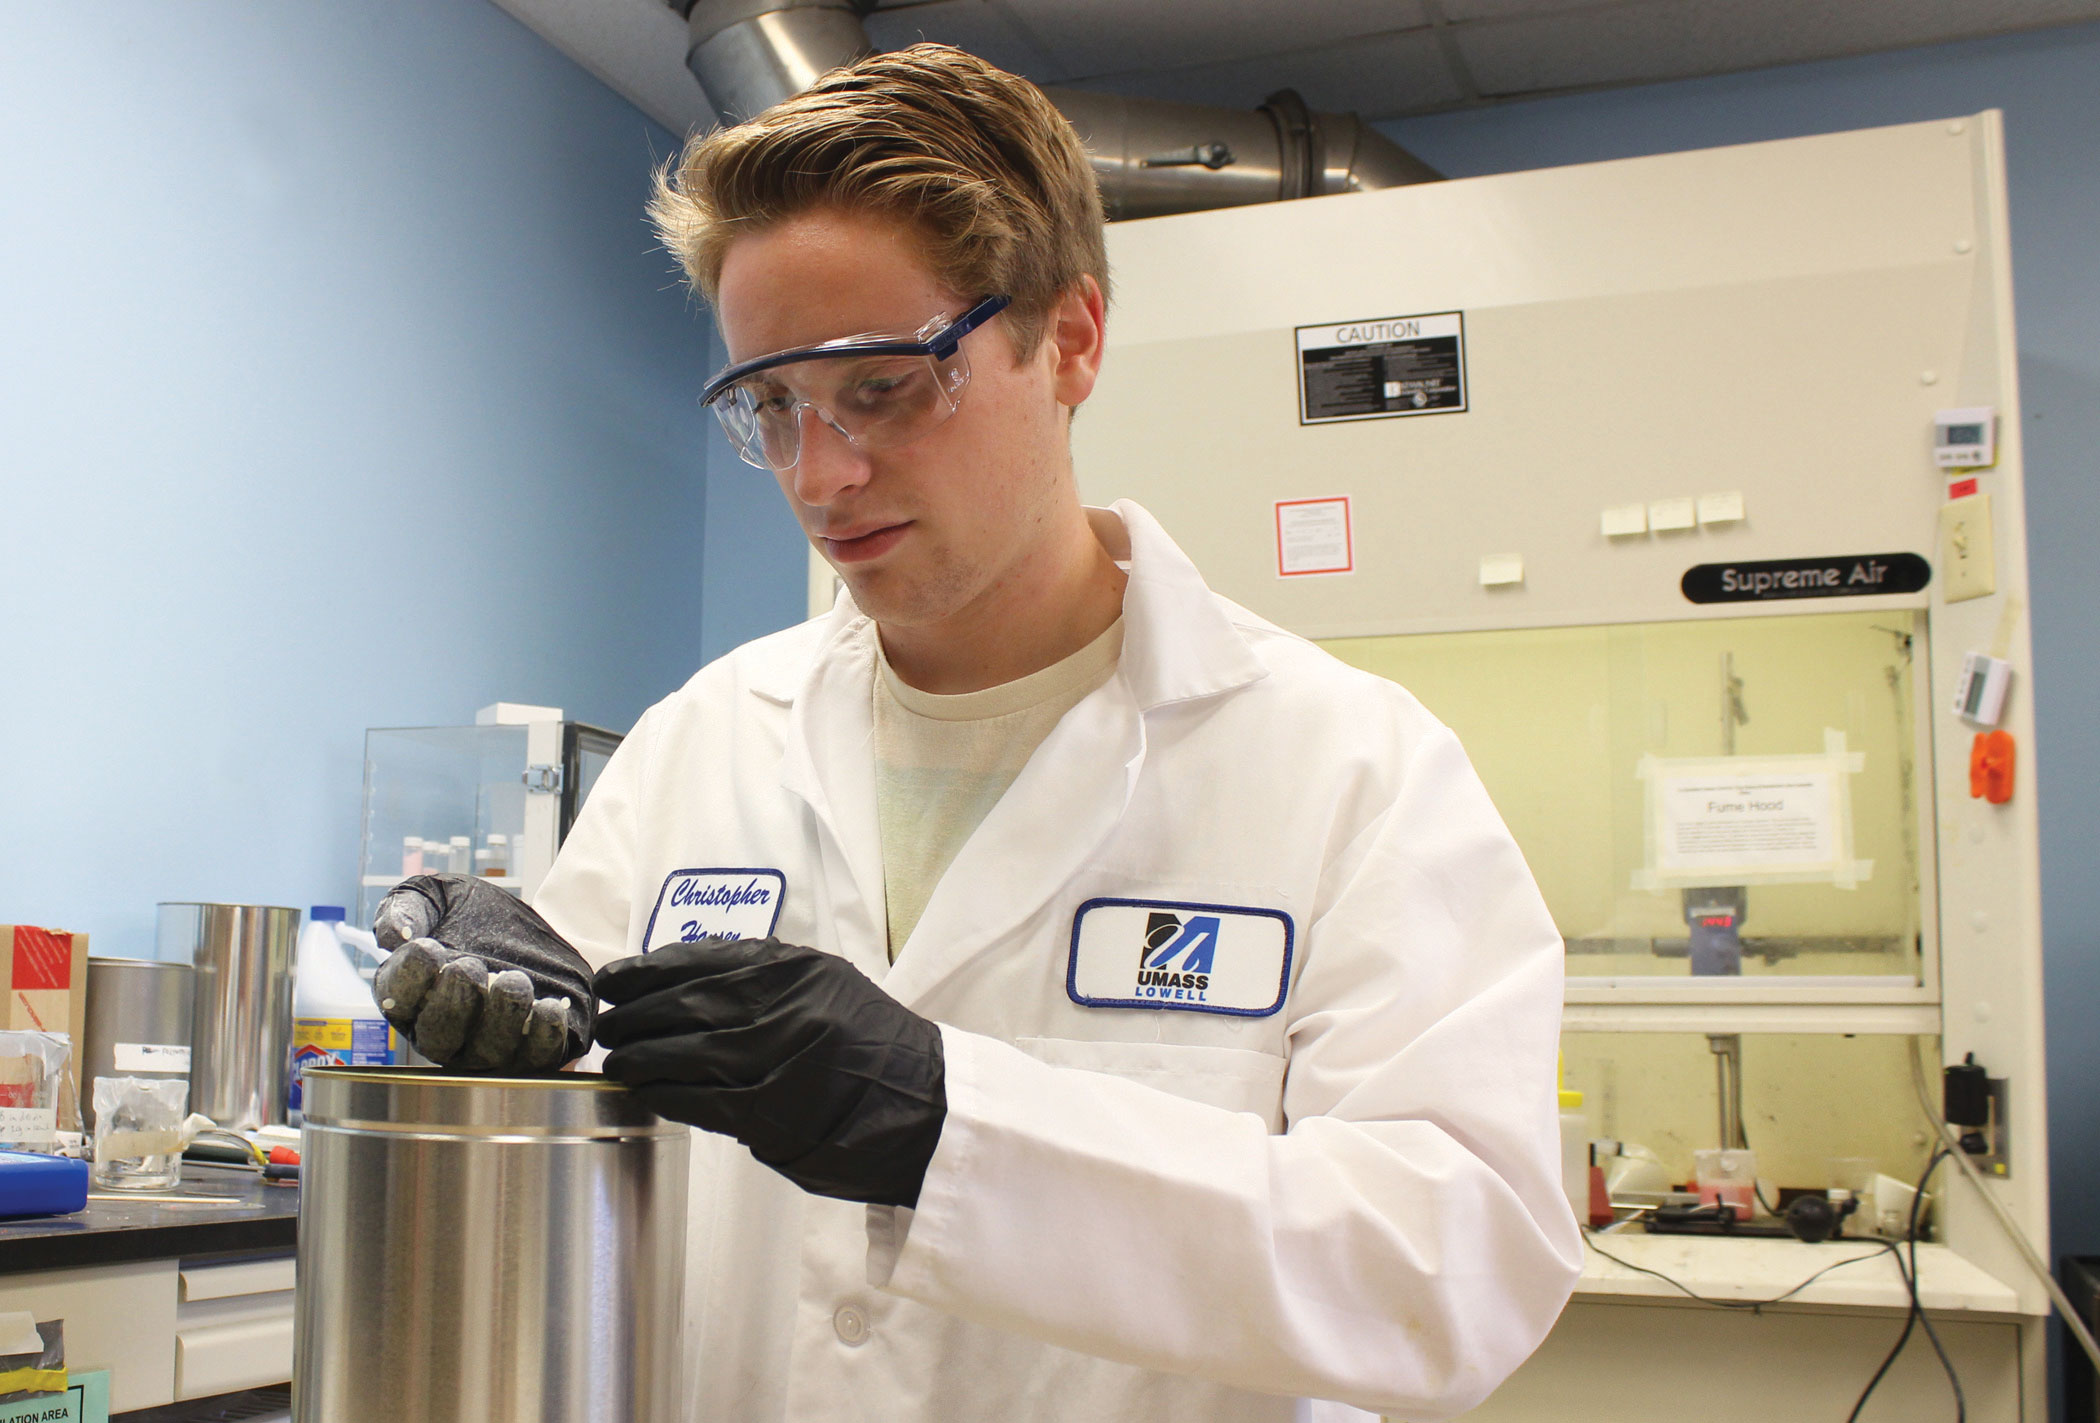 UMass Lowell Co-op Scholar Colin Senechal in the plastics engineering lab